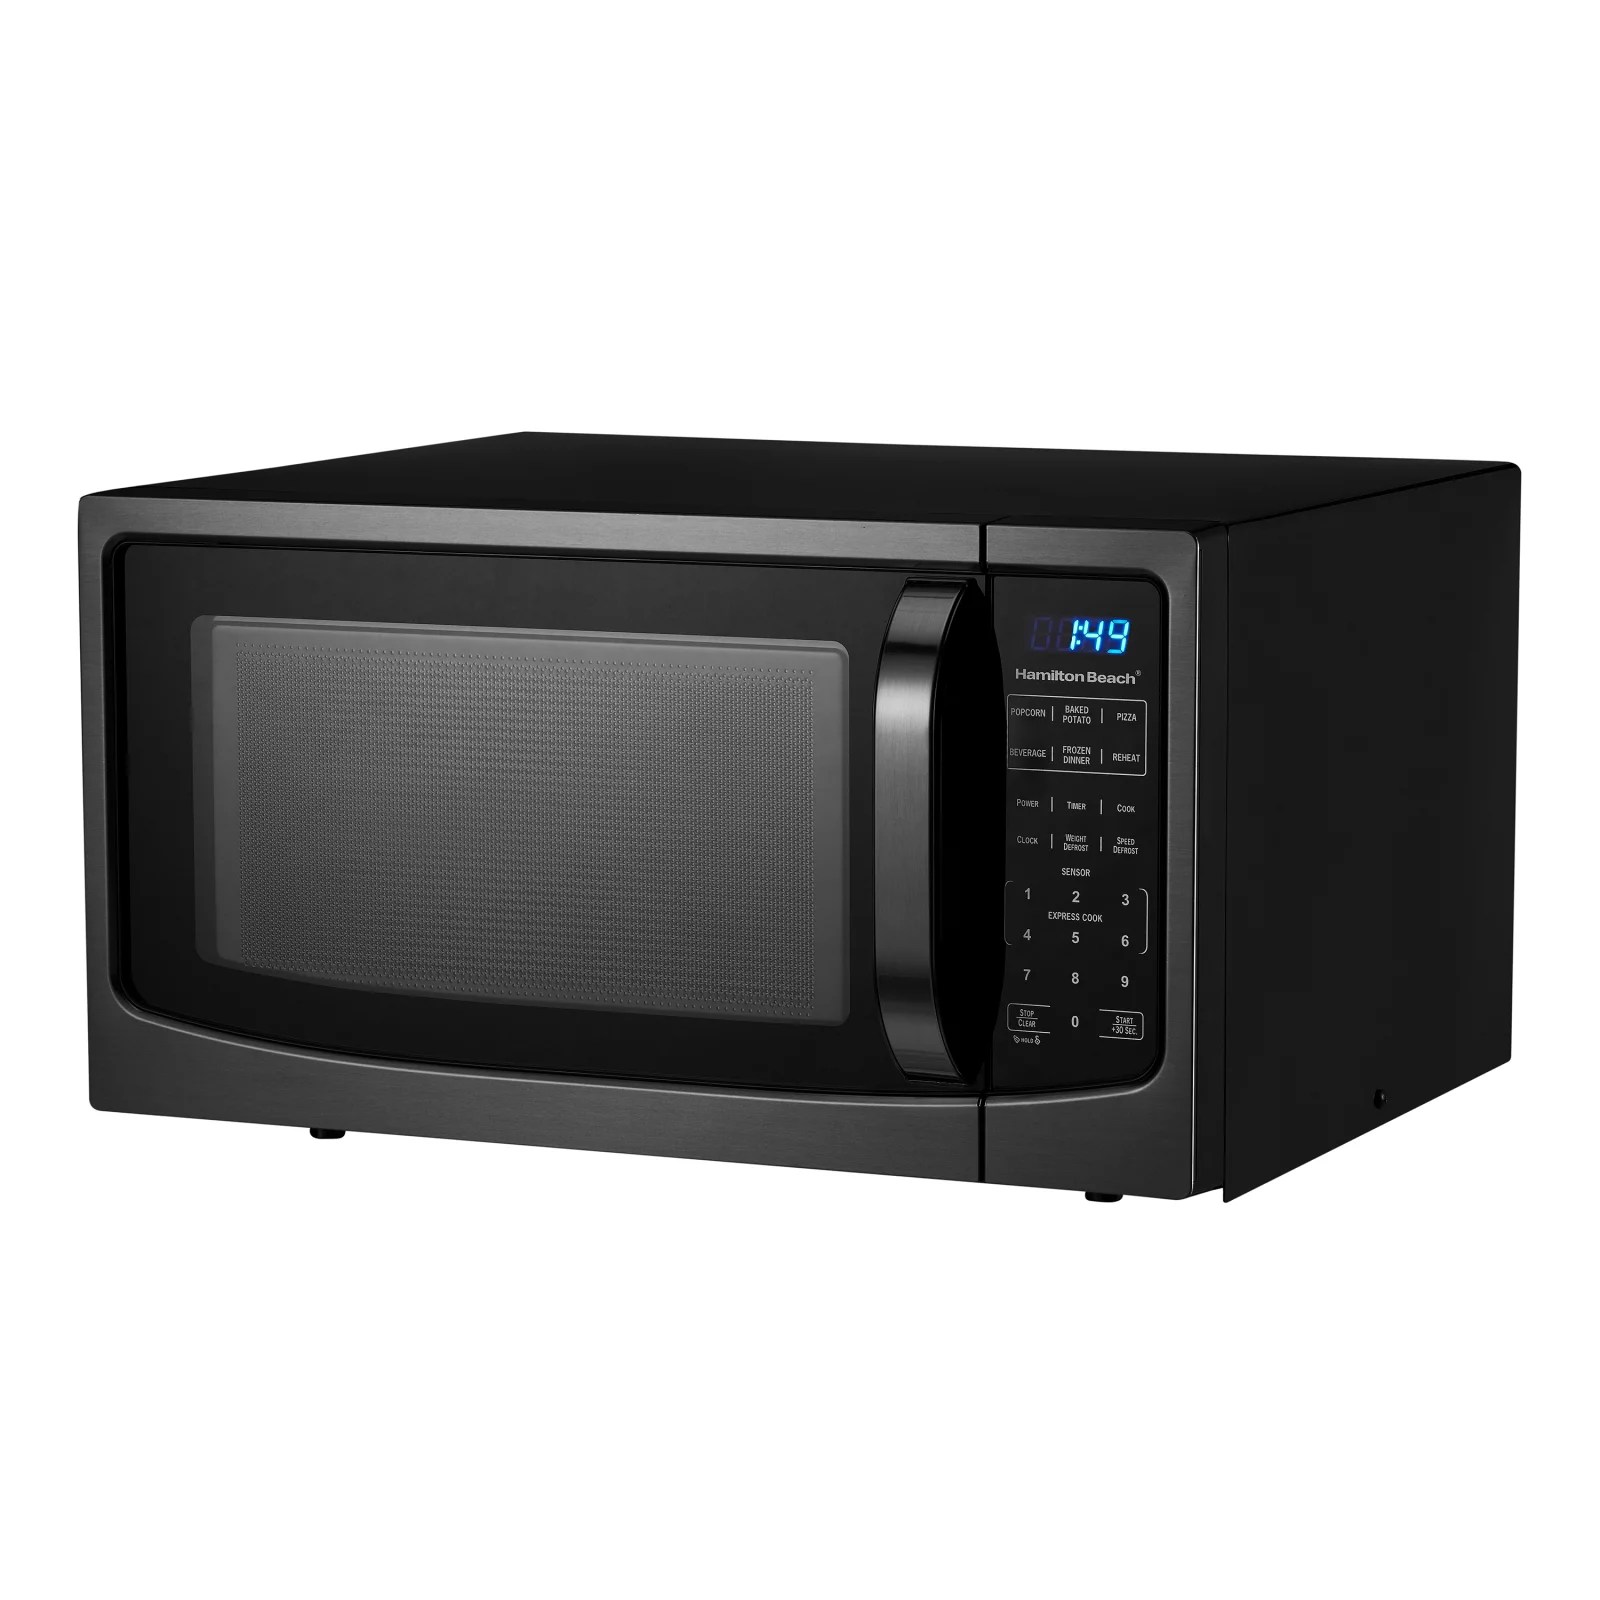 frigidaire 1 4 cu ft countertop microwave oven black stainless steel